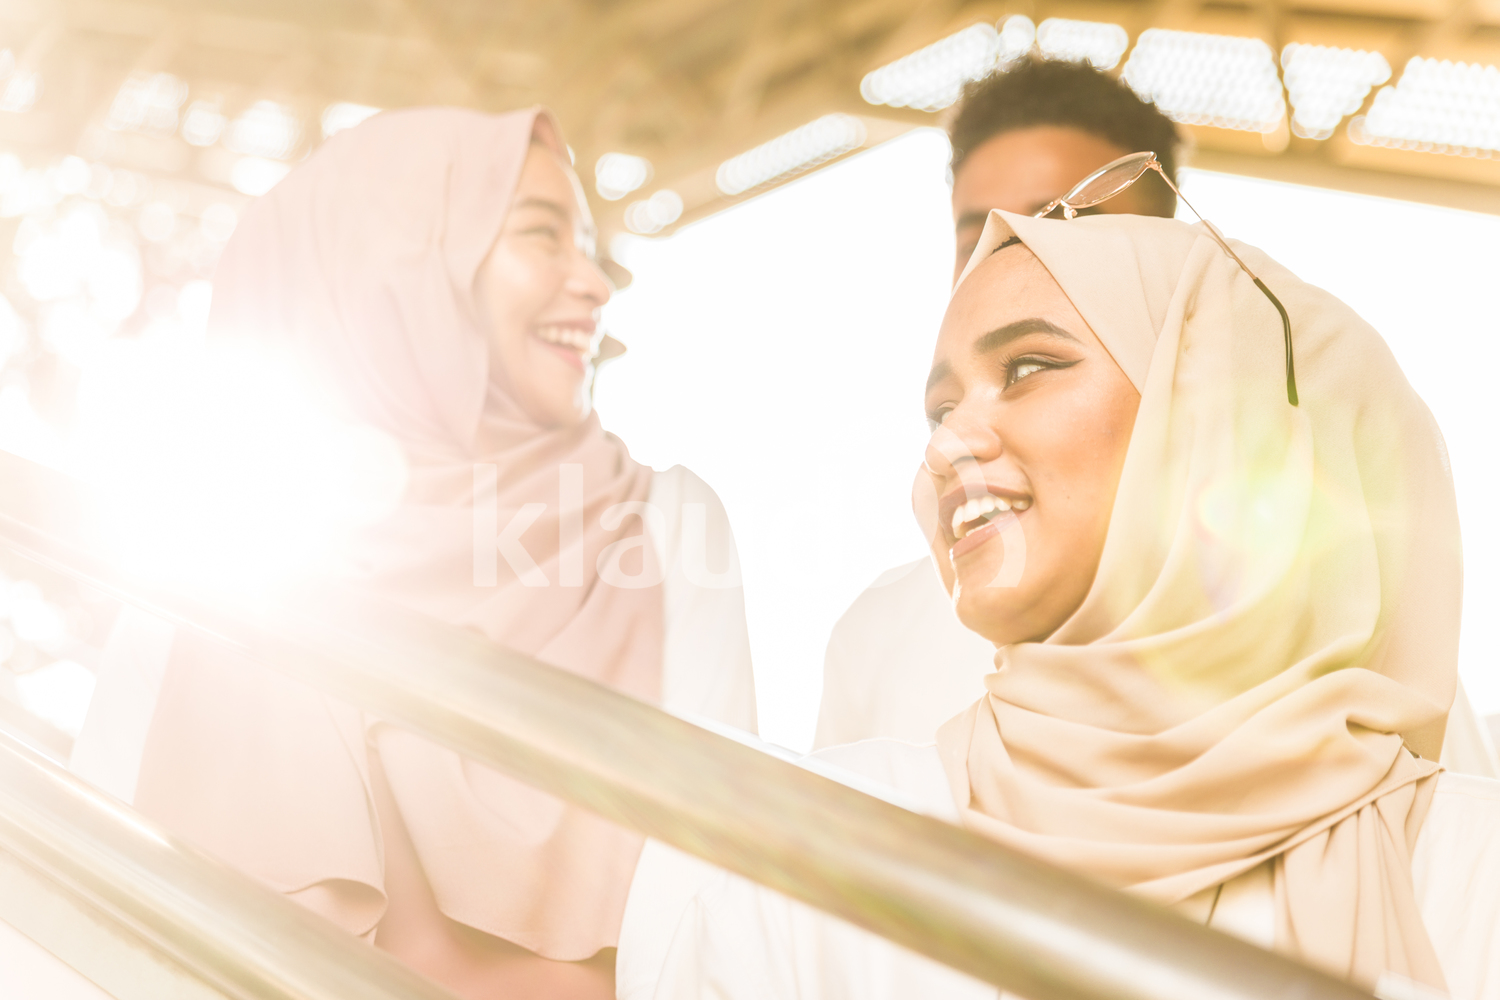 Young muslims smiling